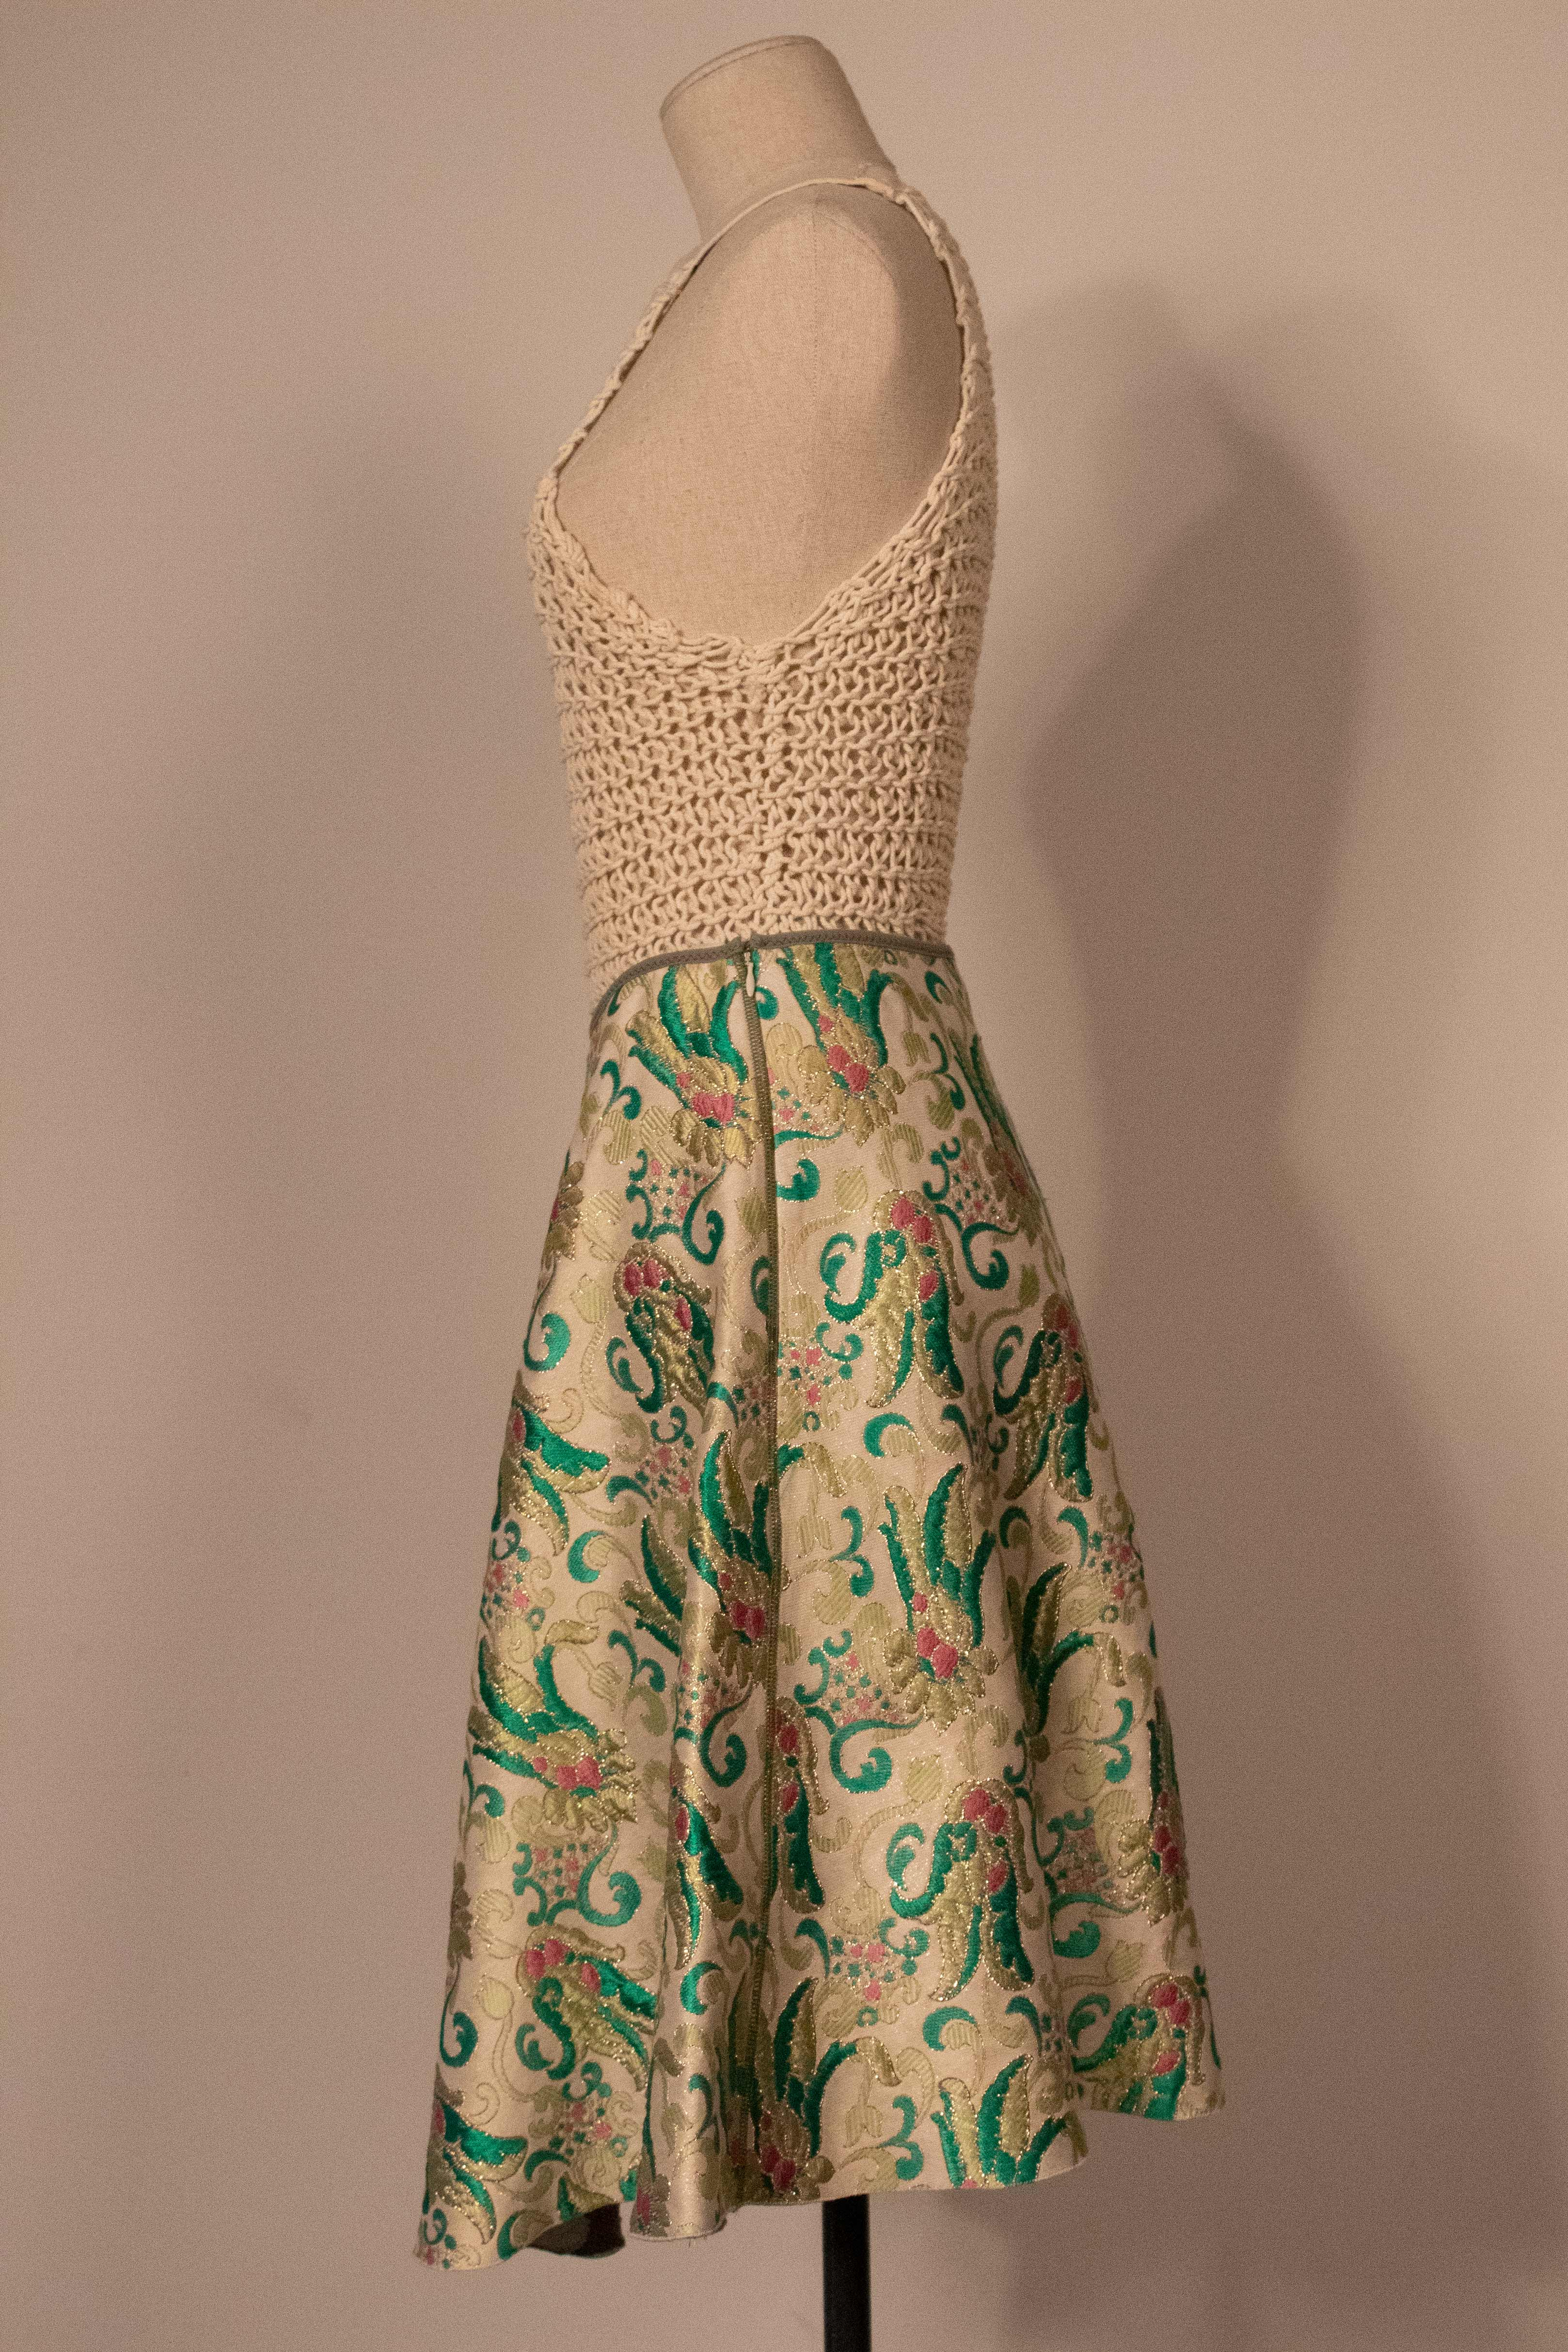 Prada cream and green brocade A-line skirt